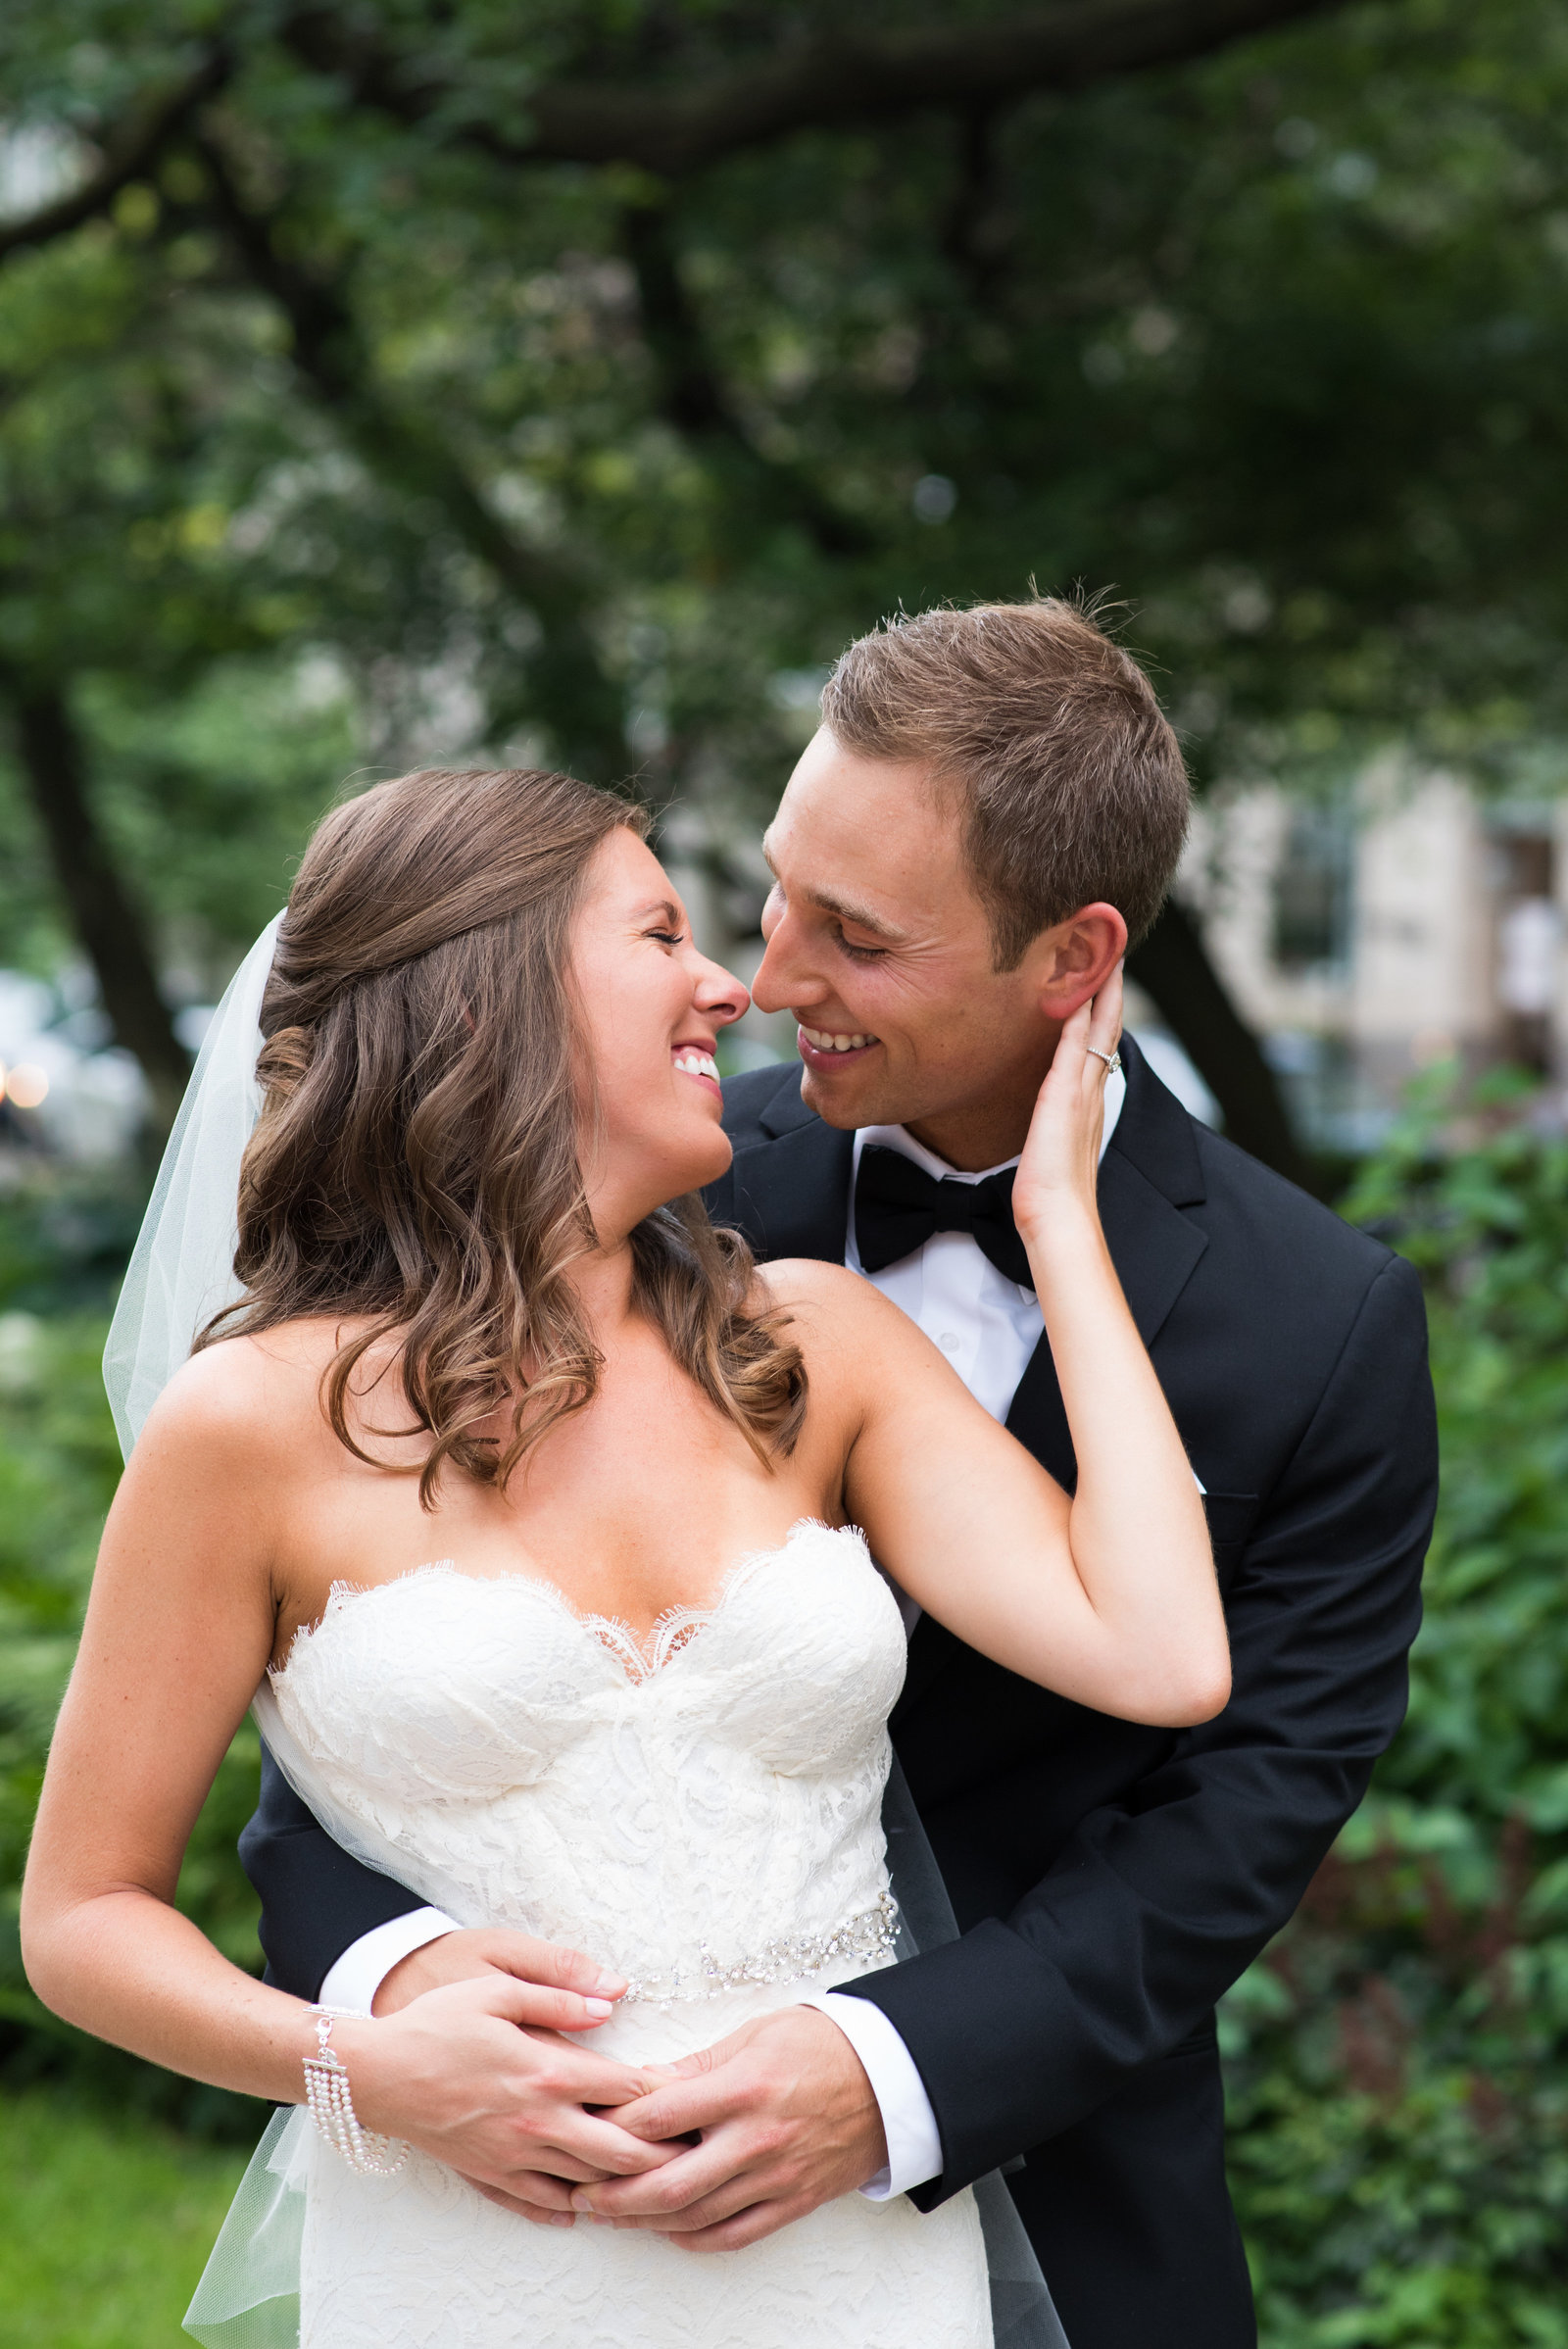 Chicago Wedding Photographer Alaina Bos-9